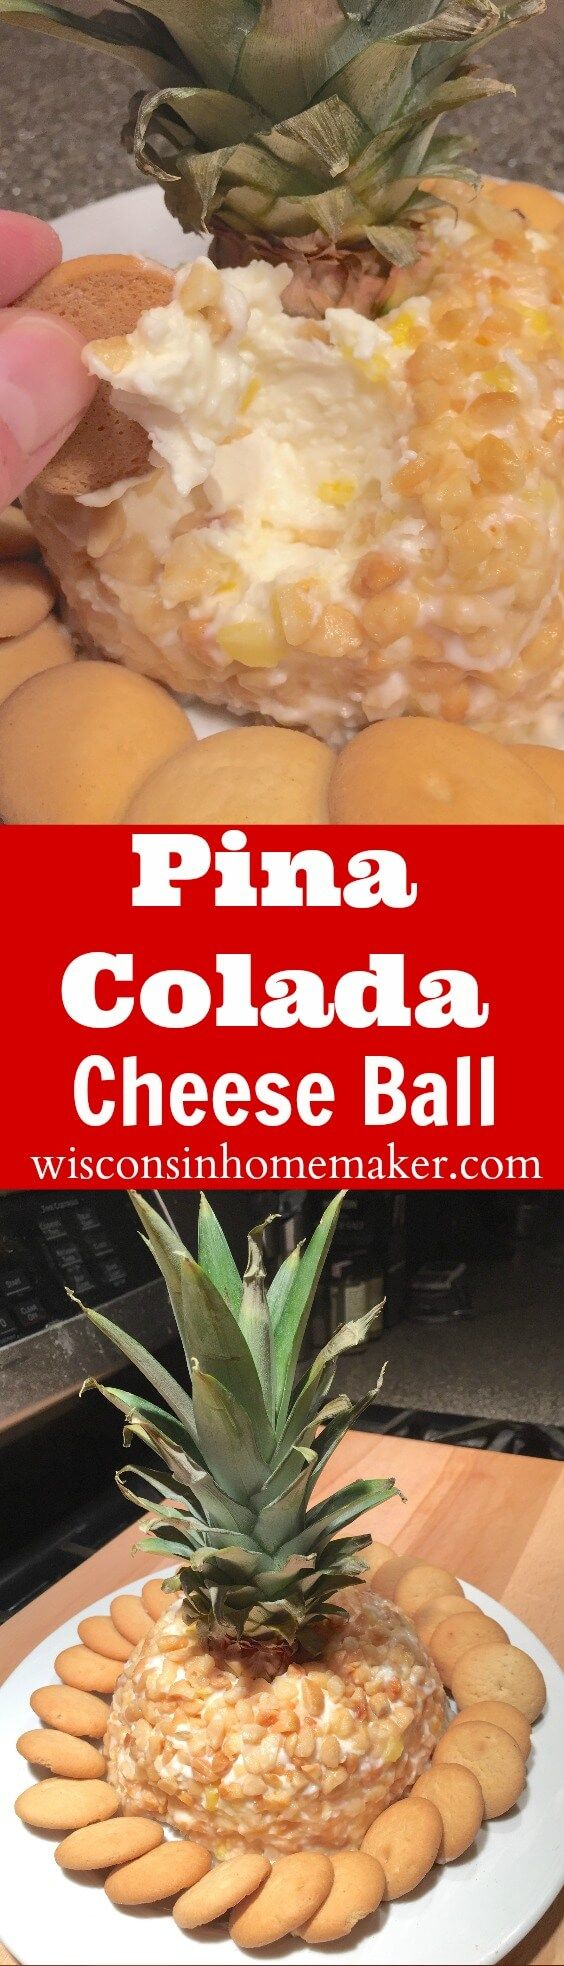 If you love the thought of tropical drinks especially, if they're poured into a pineapple, then you'll love this inspired recipe that recreates this experience in a party-favorite dessert: Pina Colada Cheese Ball. from WisconsinHomemaker.com